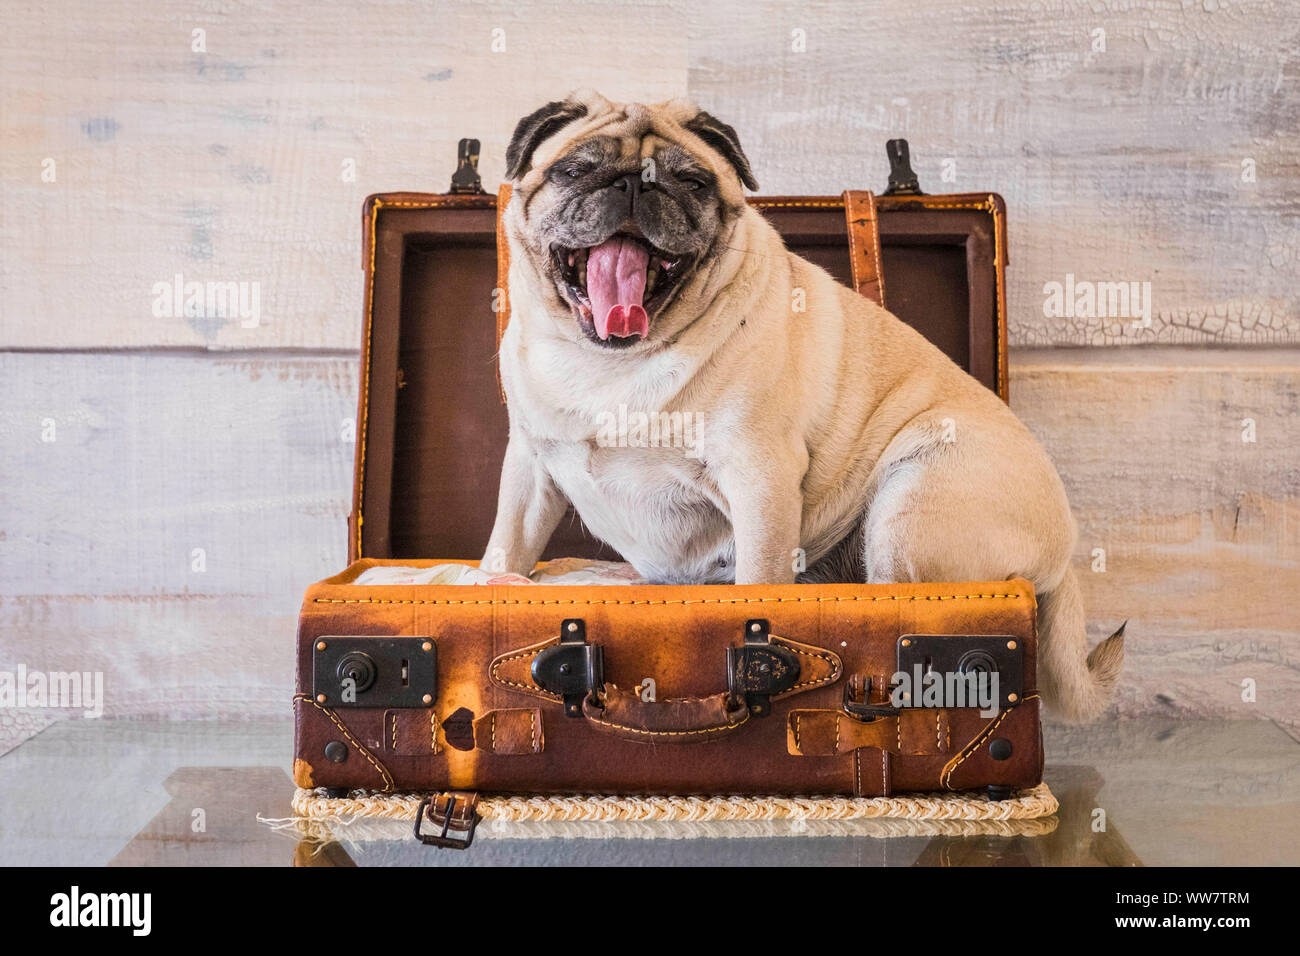 nice funny pug dog lazy sleep on the 24 hour luggage ready to travel but bored and tired with wall on the background. old vintage trolley and image, journey concept Stock Photo